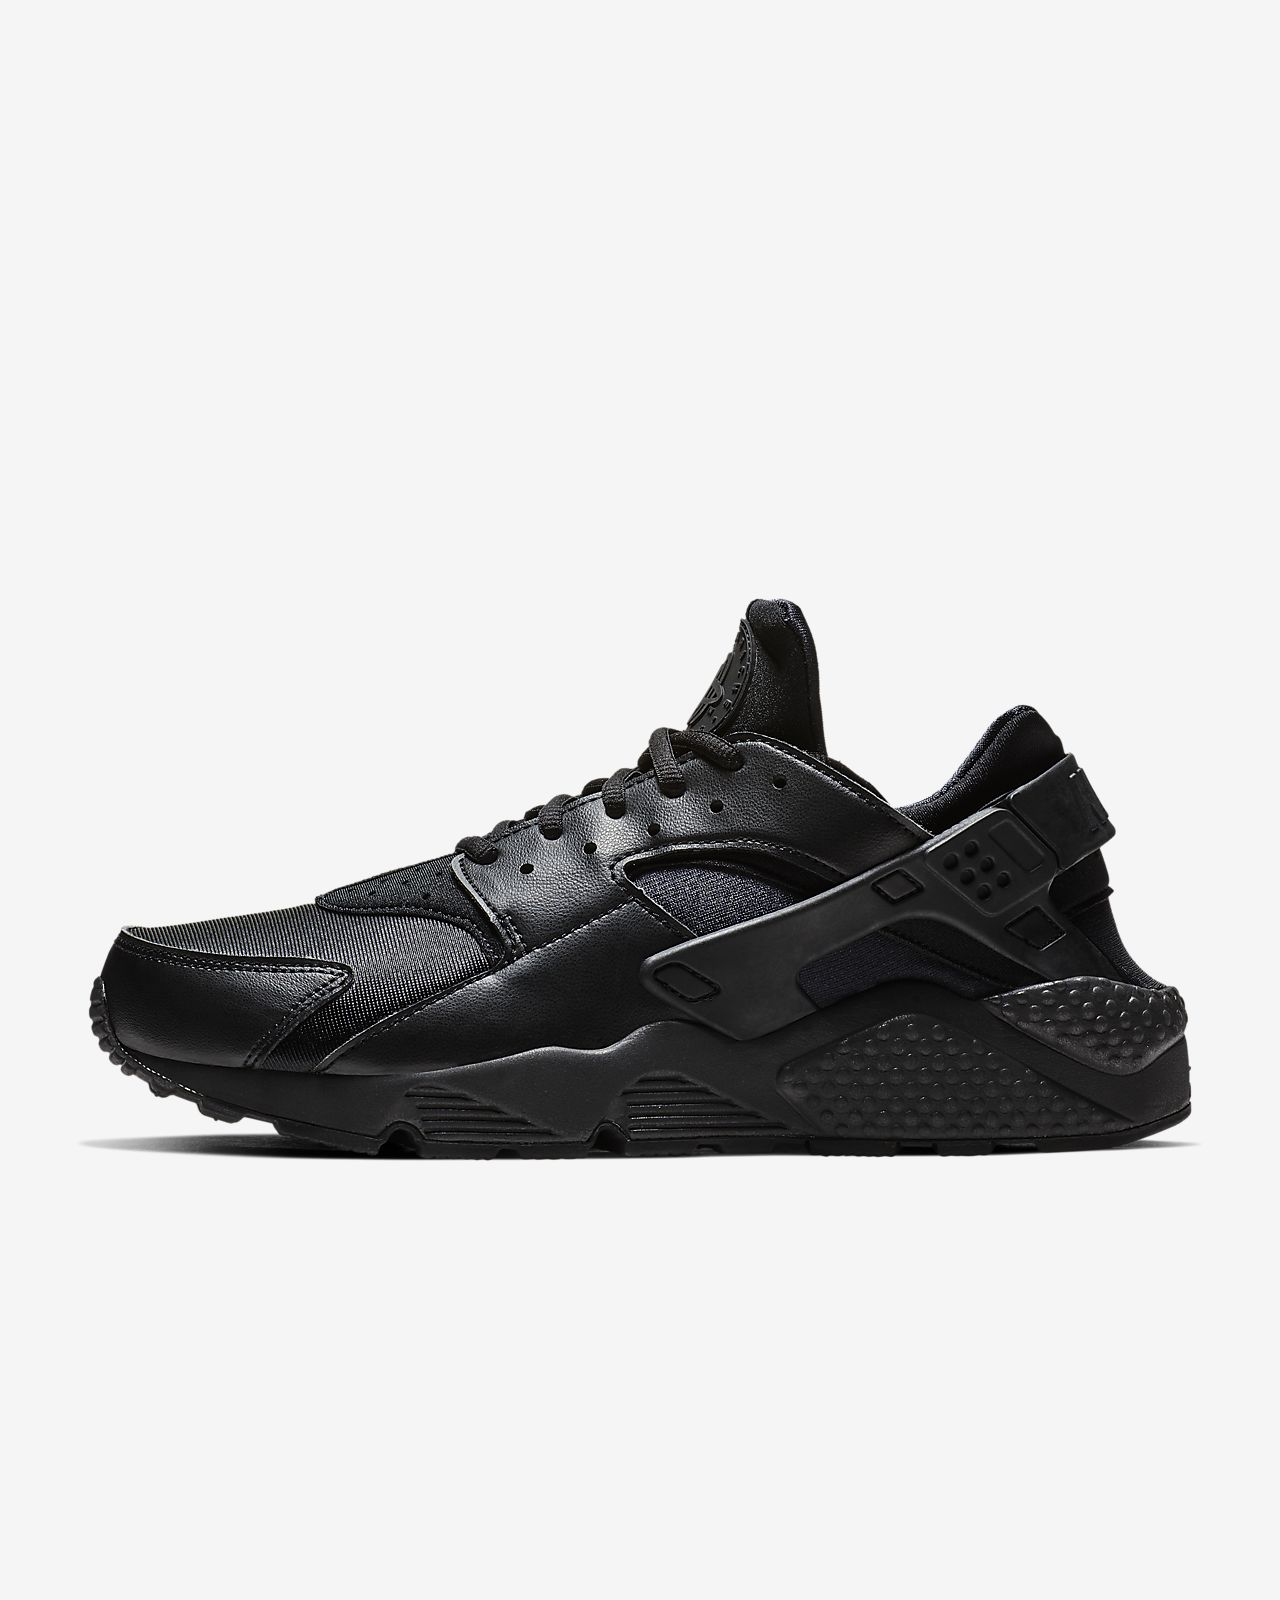 Nike Air Huarache Women's Shoe. SE